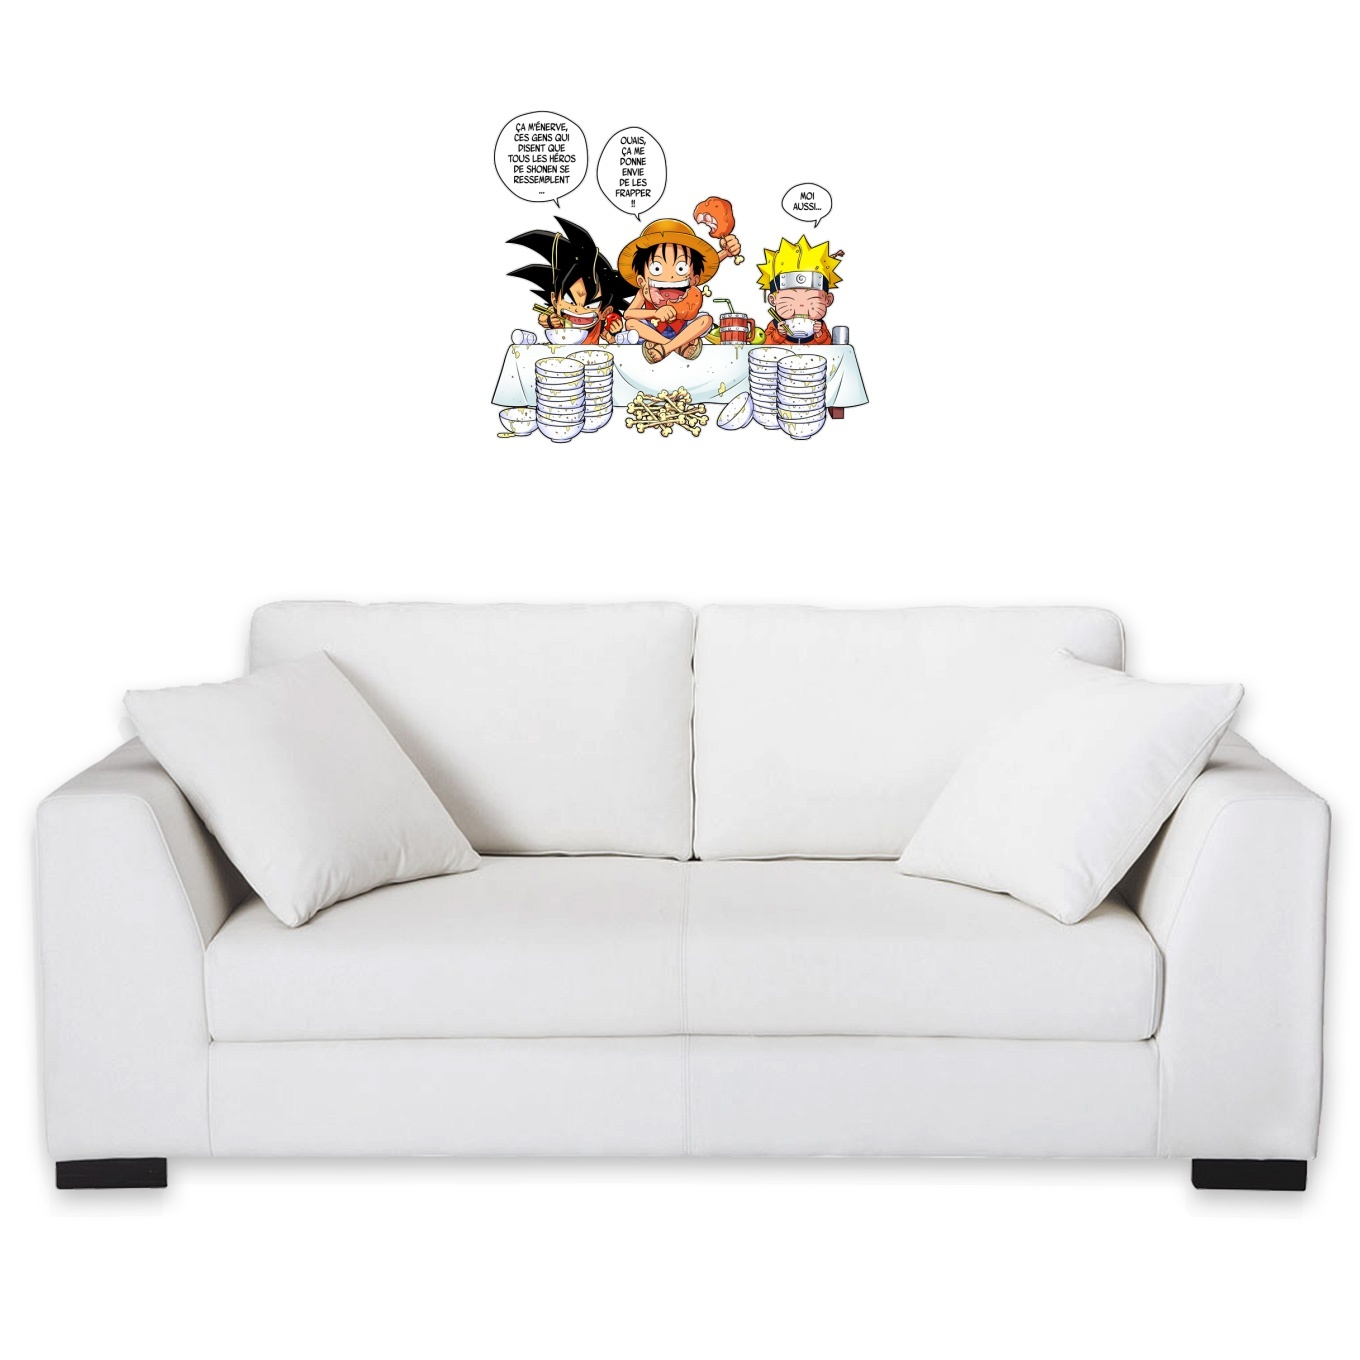 Wall Stickers Manga Parodies